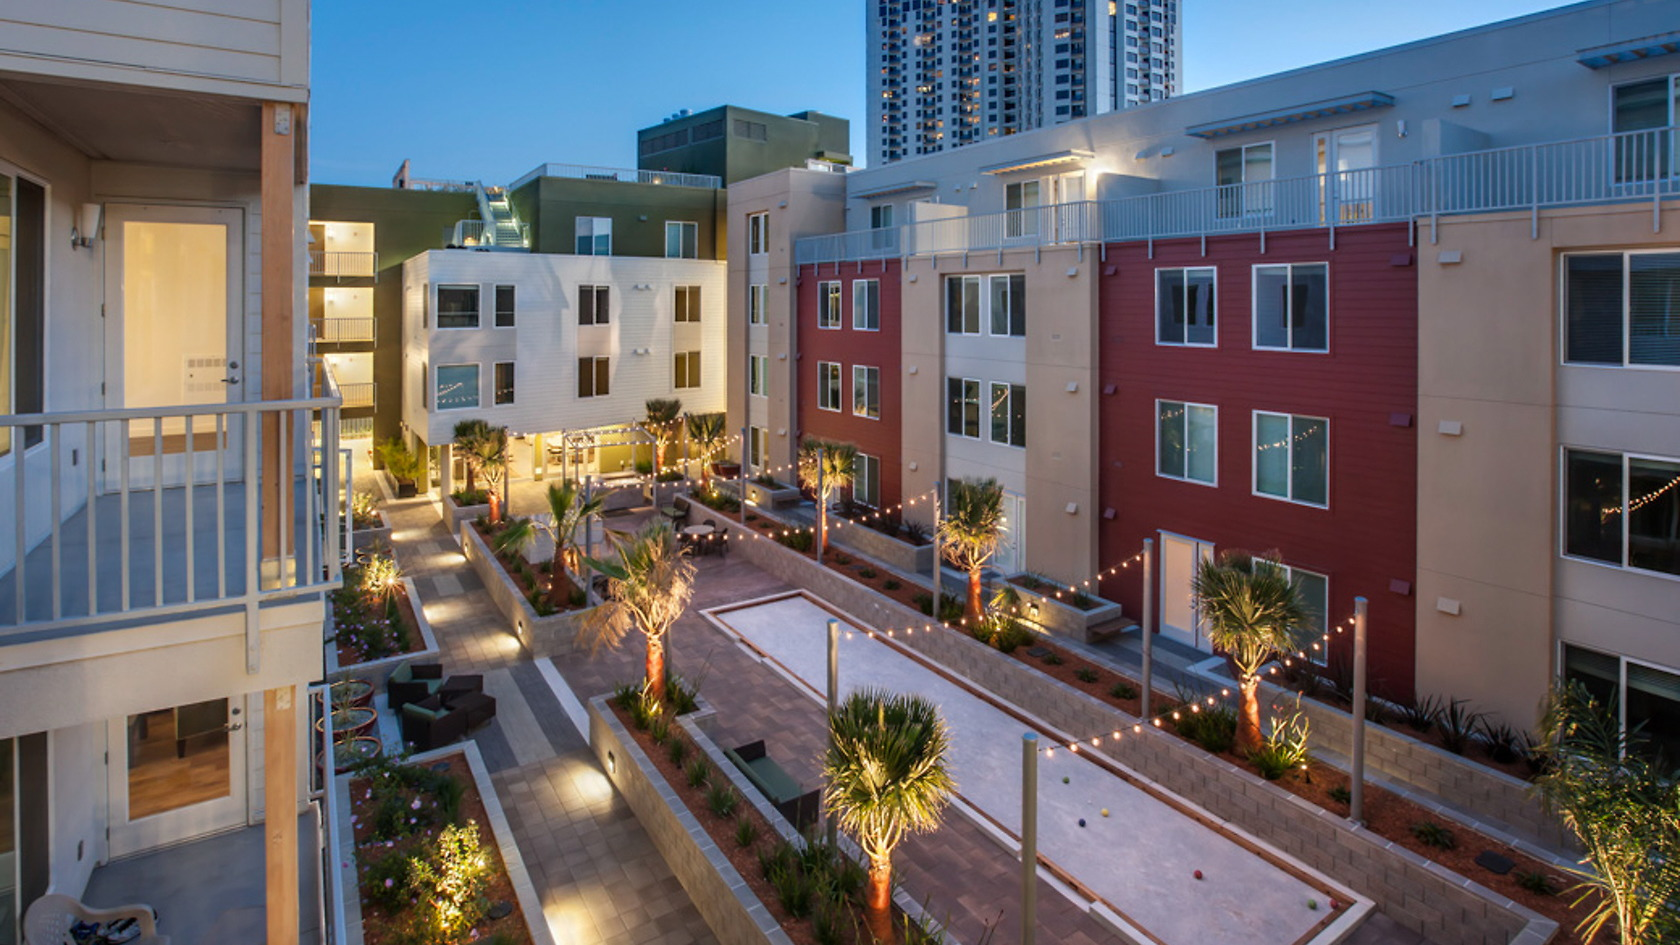 Emme Serviced Apartments-Sample Image of Emeryville CA Temporary Apartments